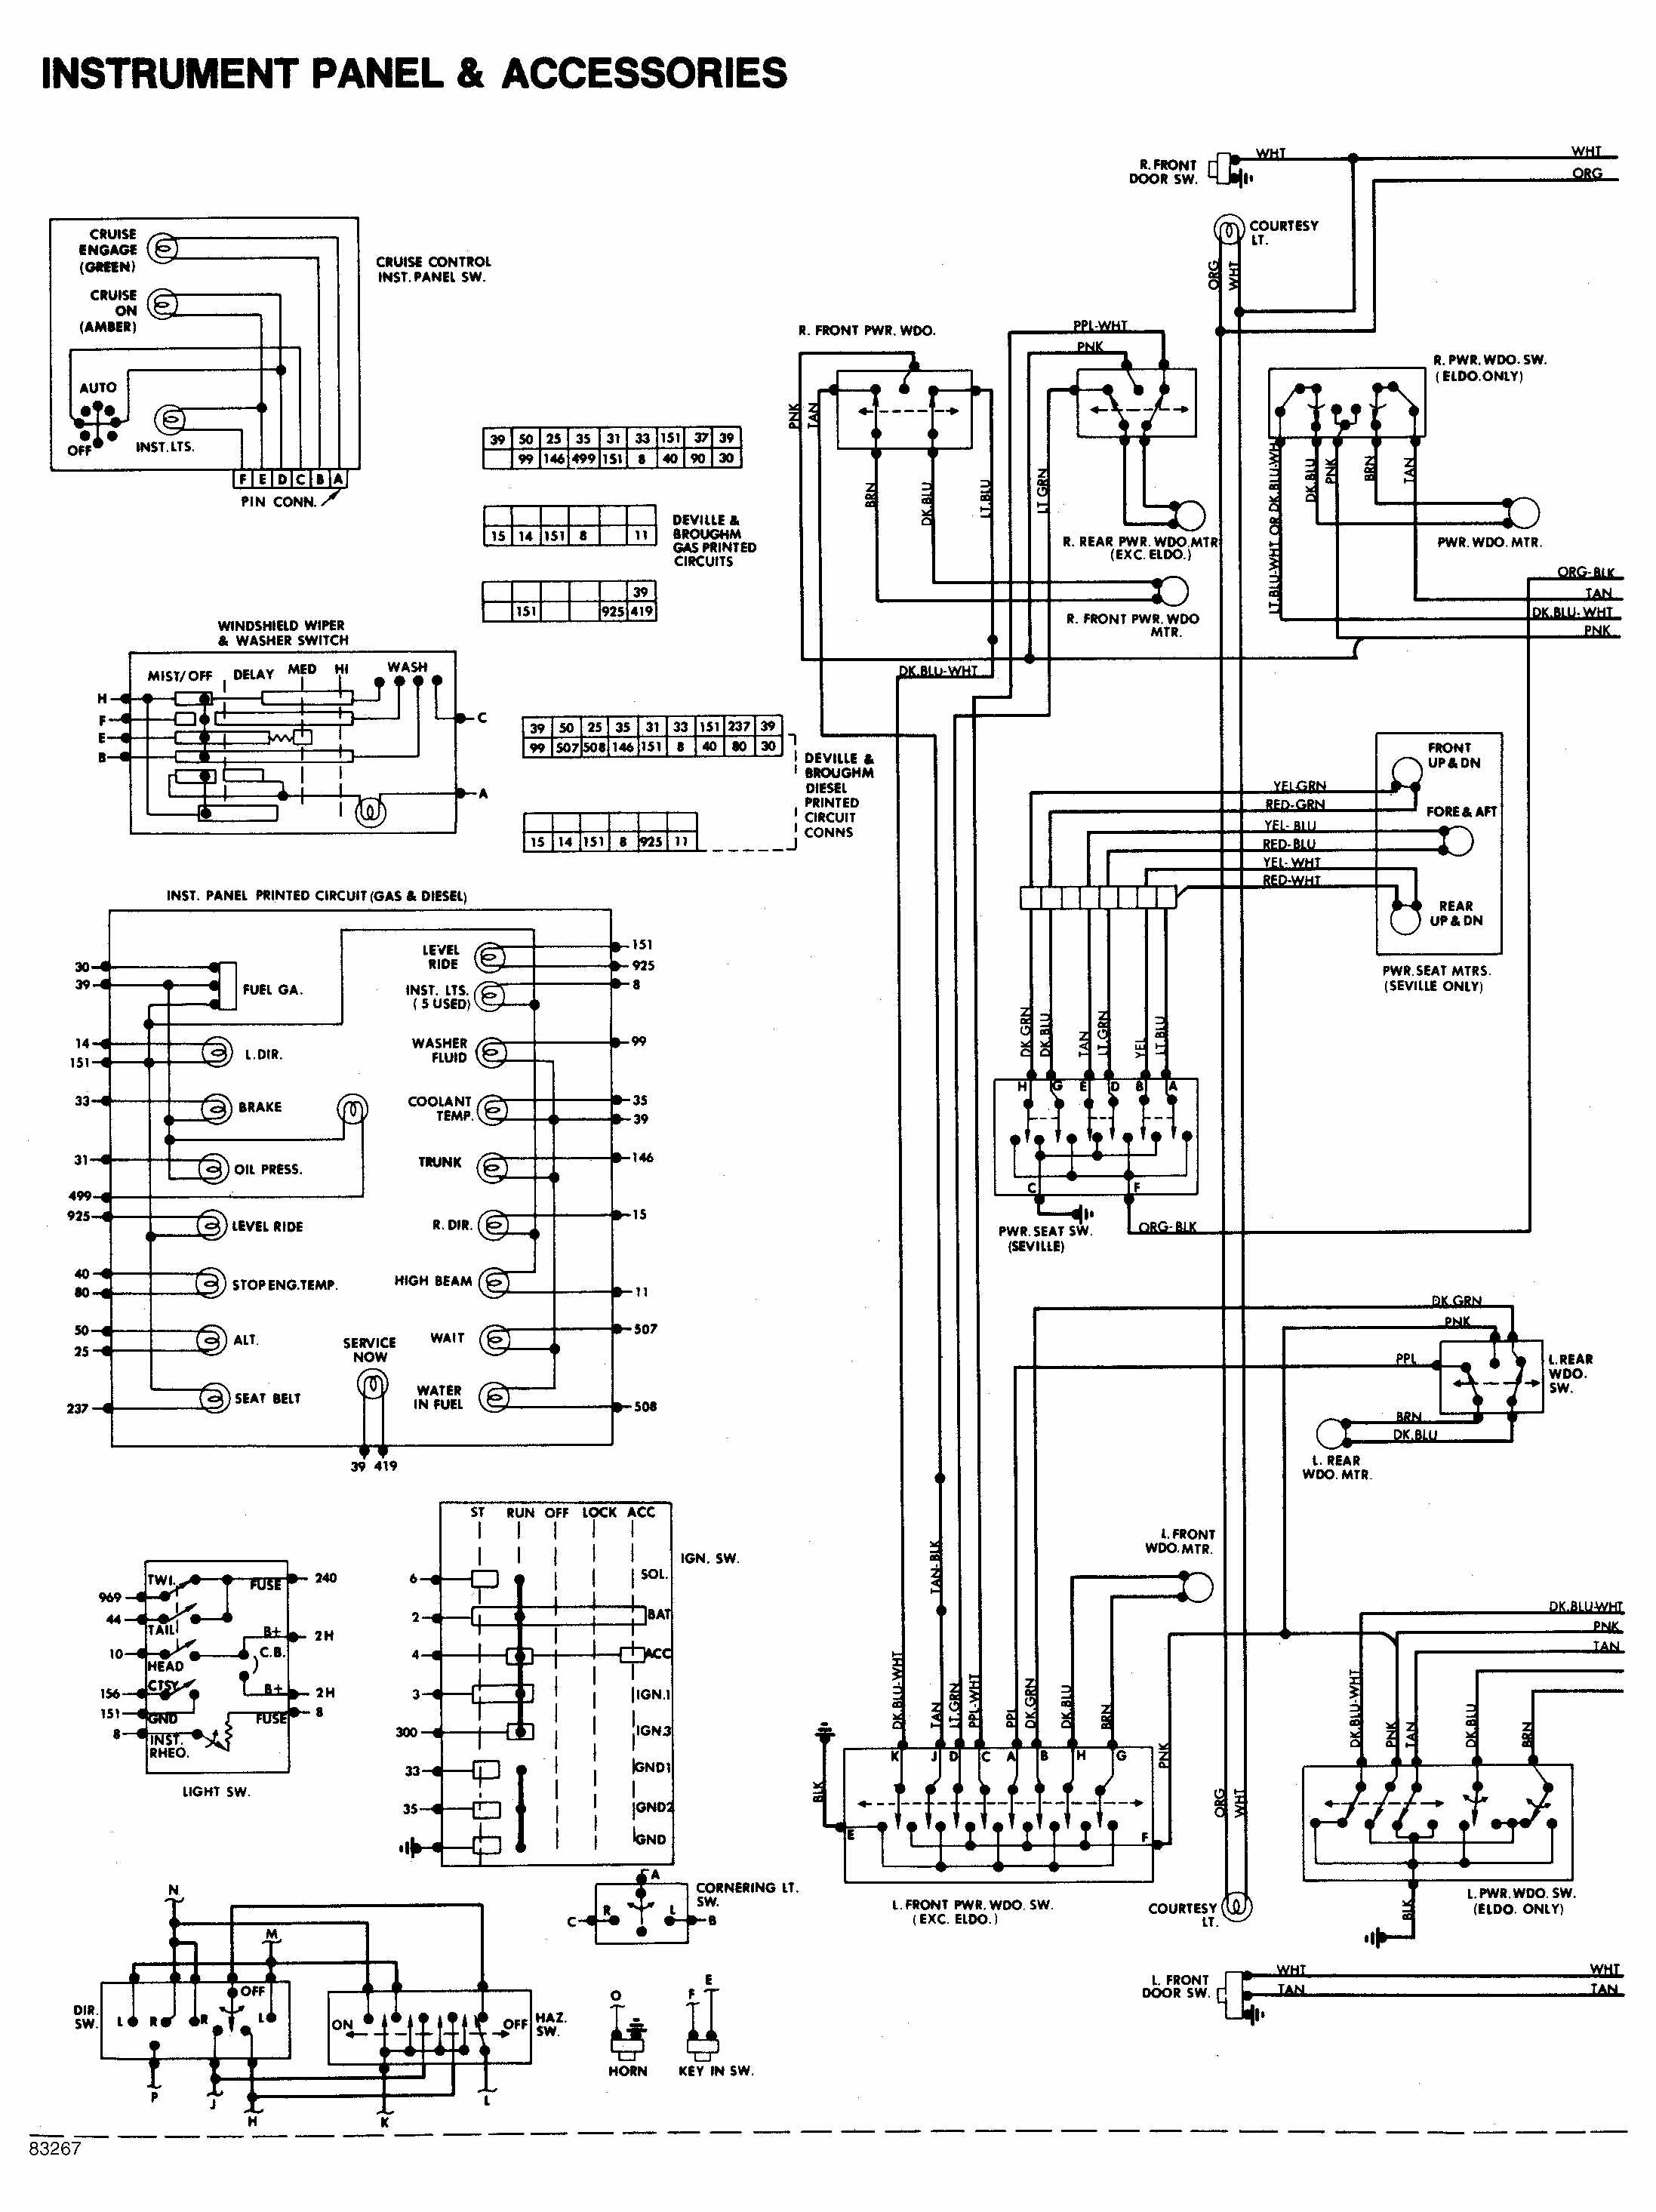 instrument panel and accessories wiring diagram of 1984 cadillac deville 84 corvette wiring diagram 84 gmc column switches \u2022 wiring  at honlapkeszites.co